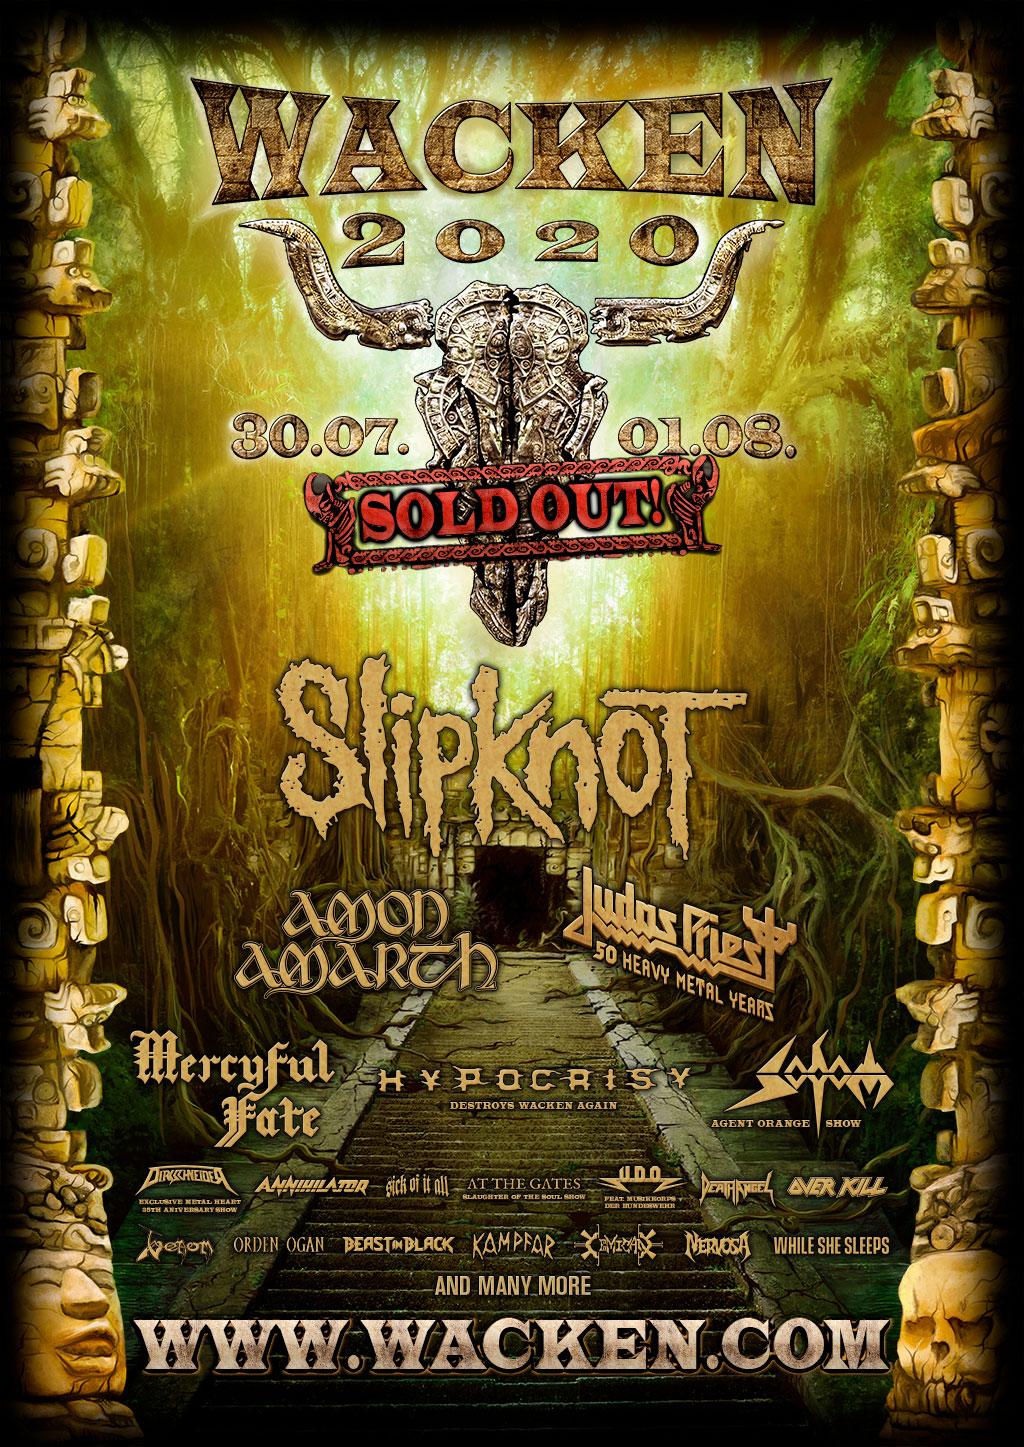 WACKEN OPEN AIR confirms SLIPKNOT as next year's headliner